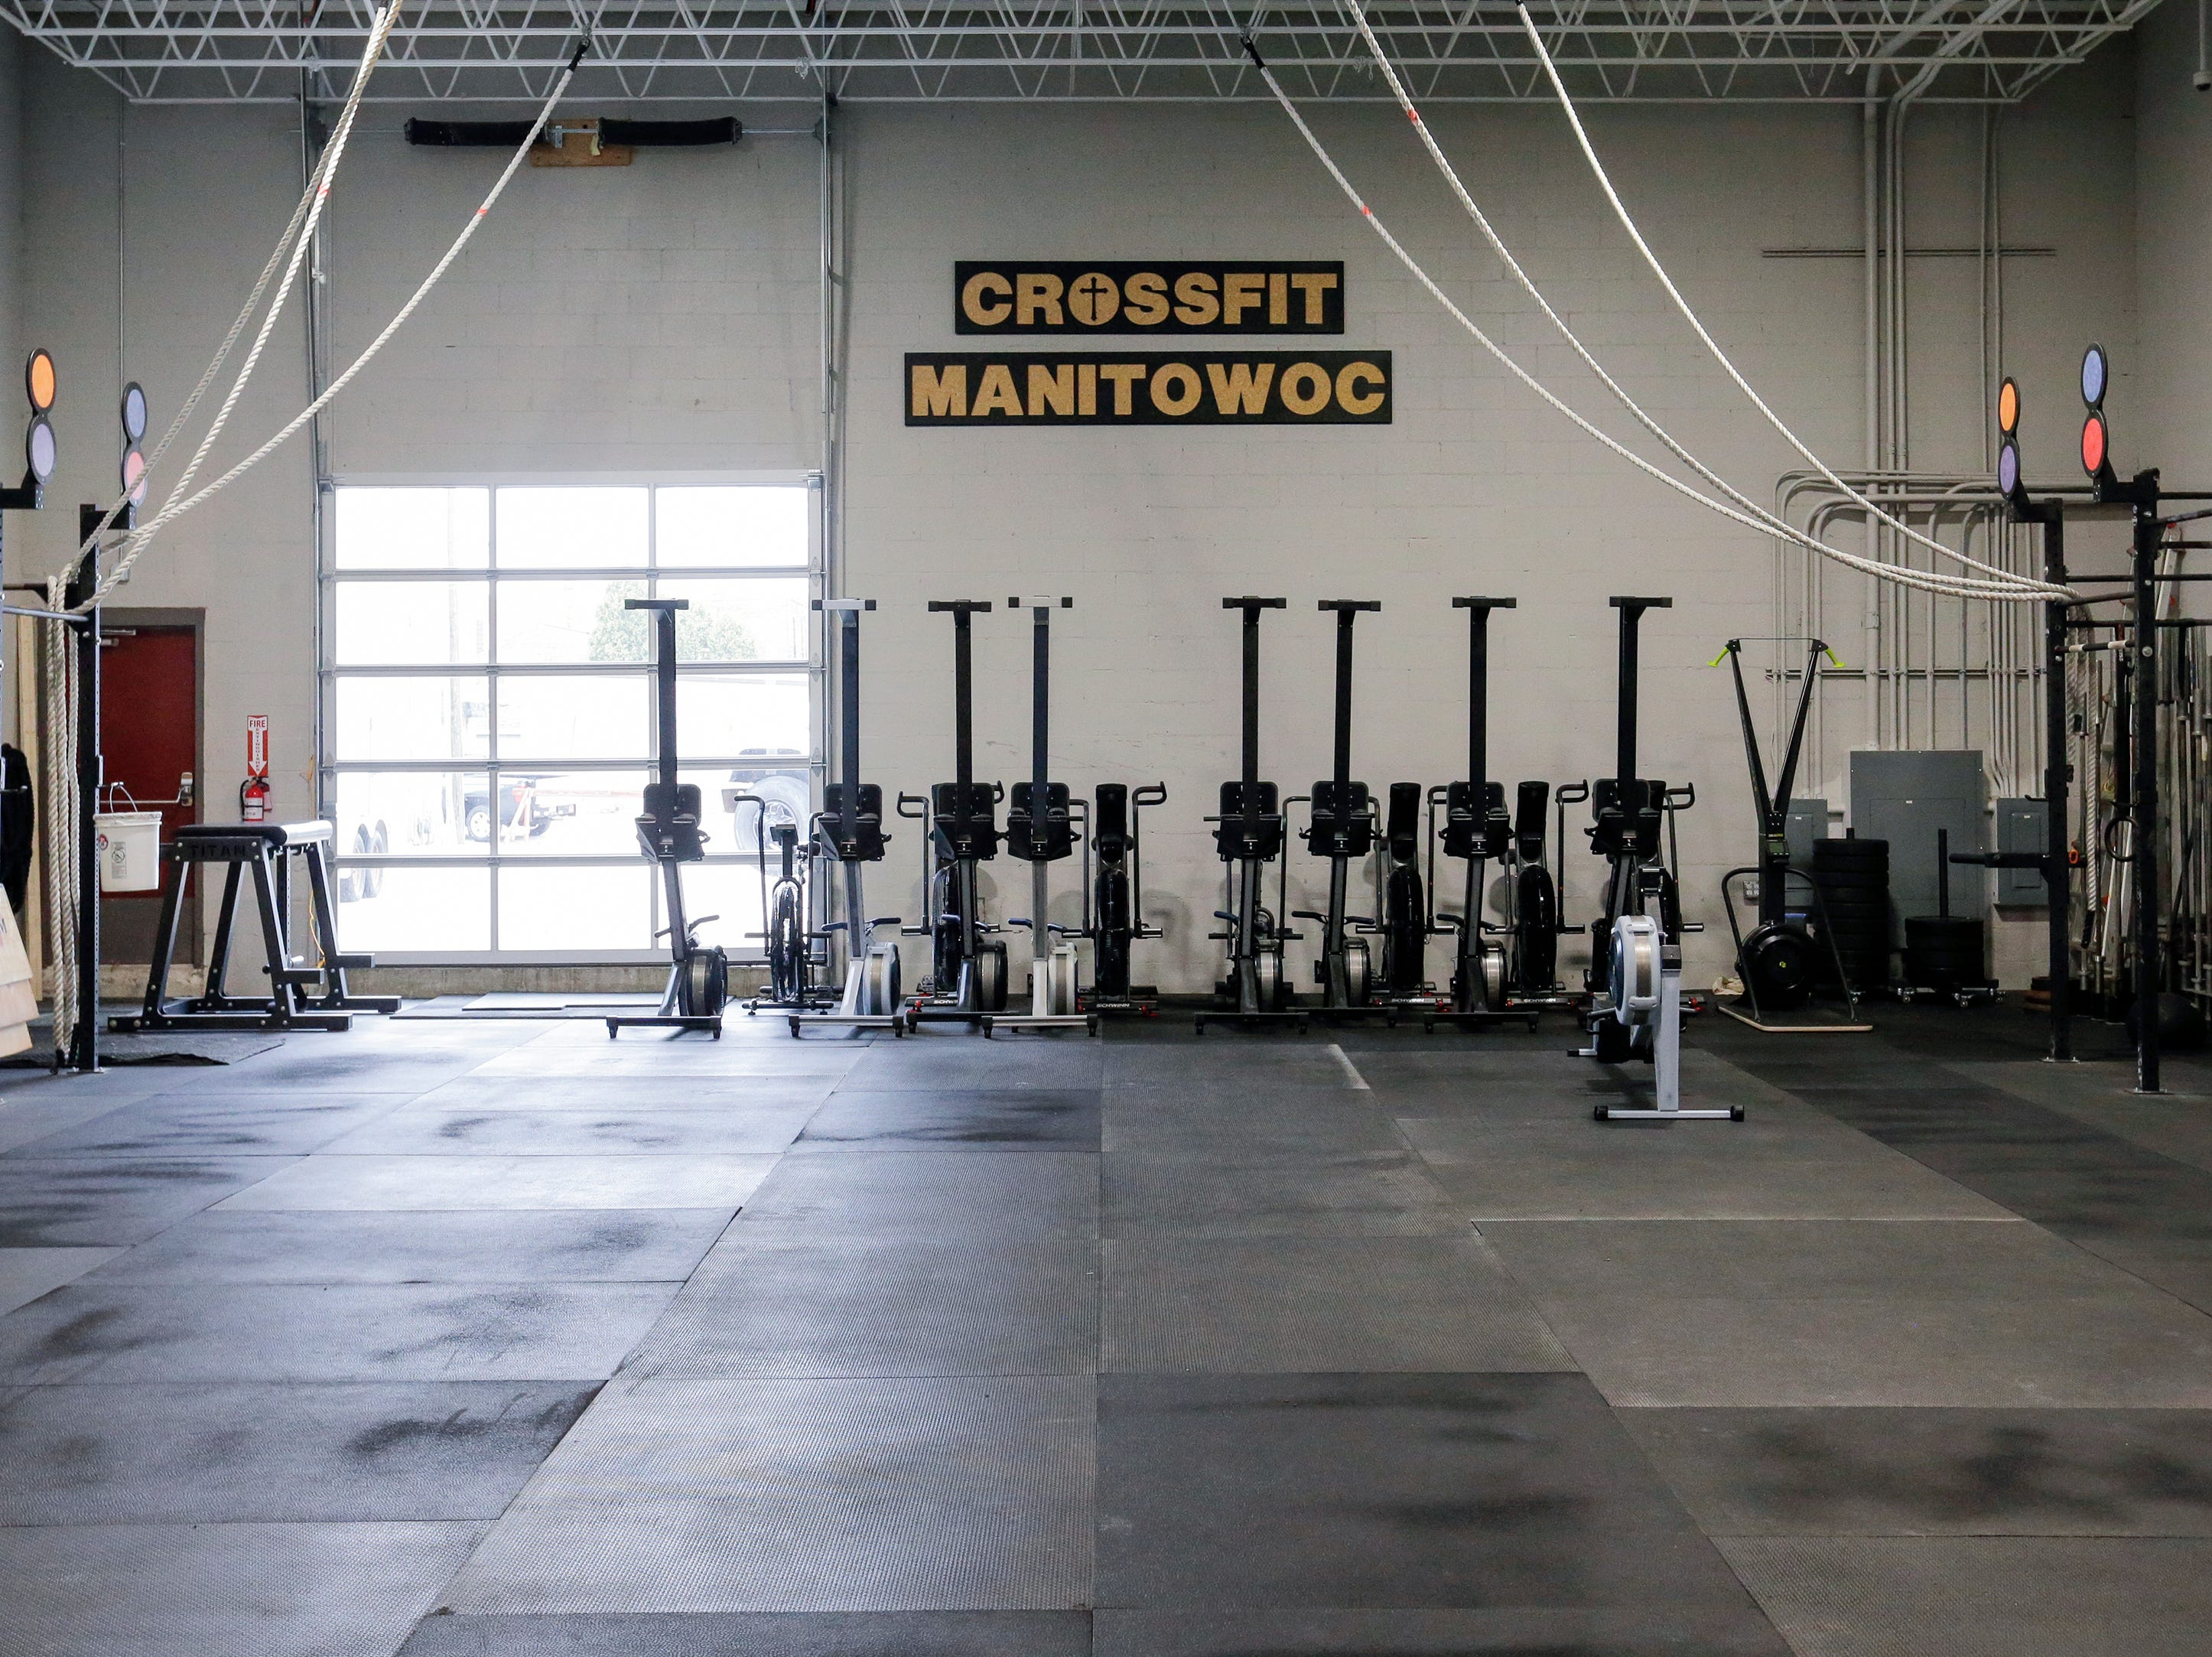 The Crossfit Manitowoc gym at Strand Adventures Wednesday, May 1, 2019, in Manitowoc, Wis. Joshua Clark/USA TODAY NETWORK-Wisconsin